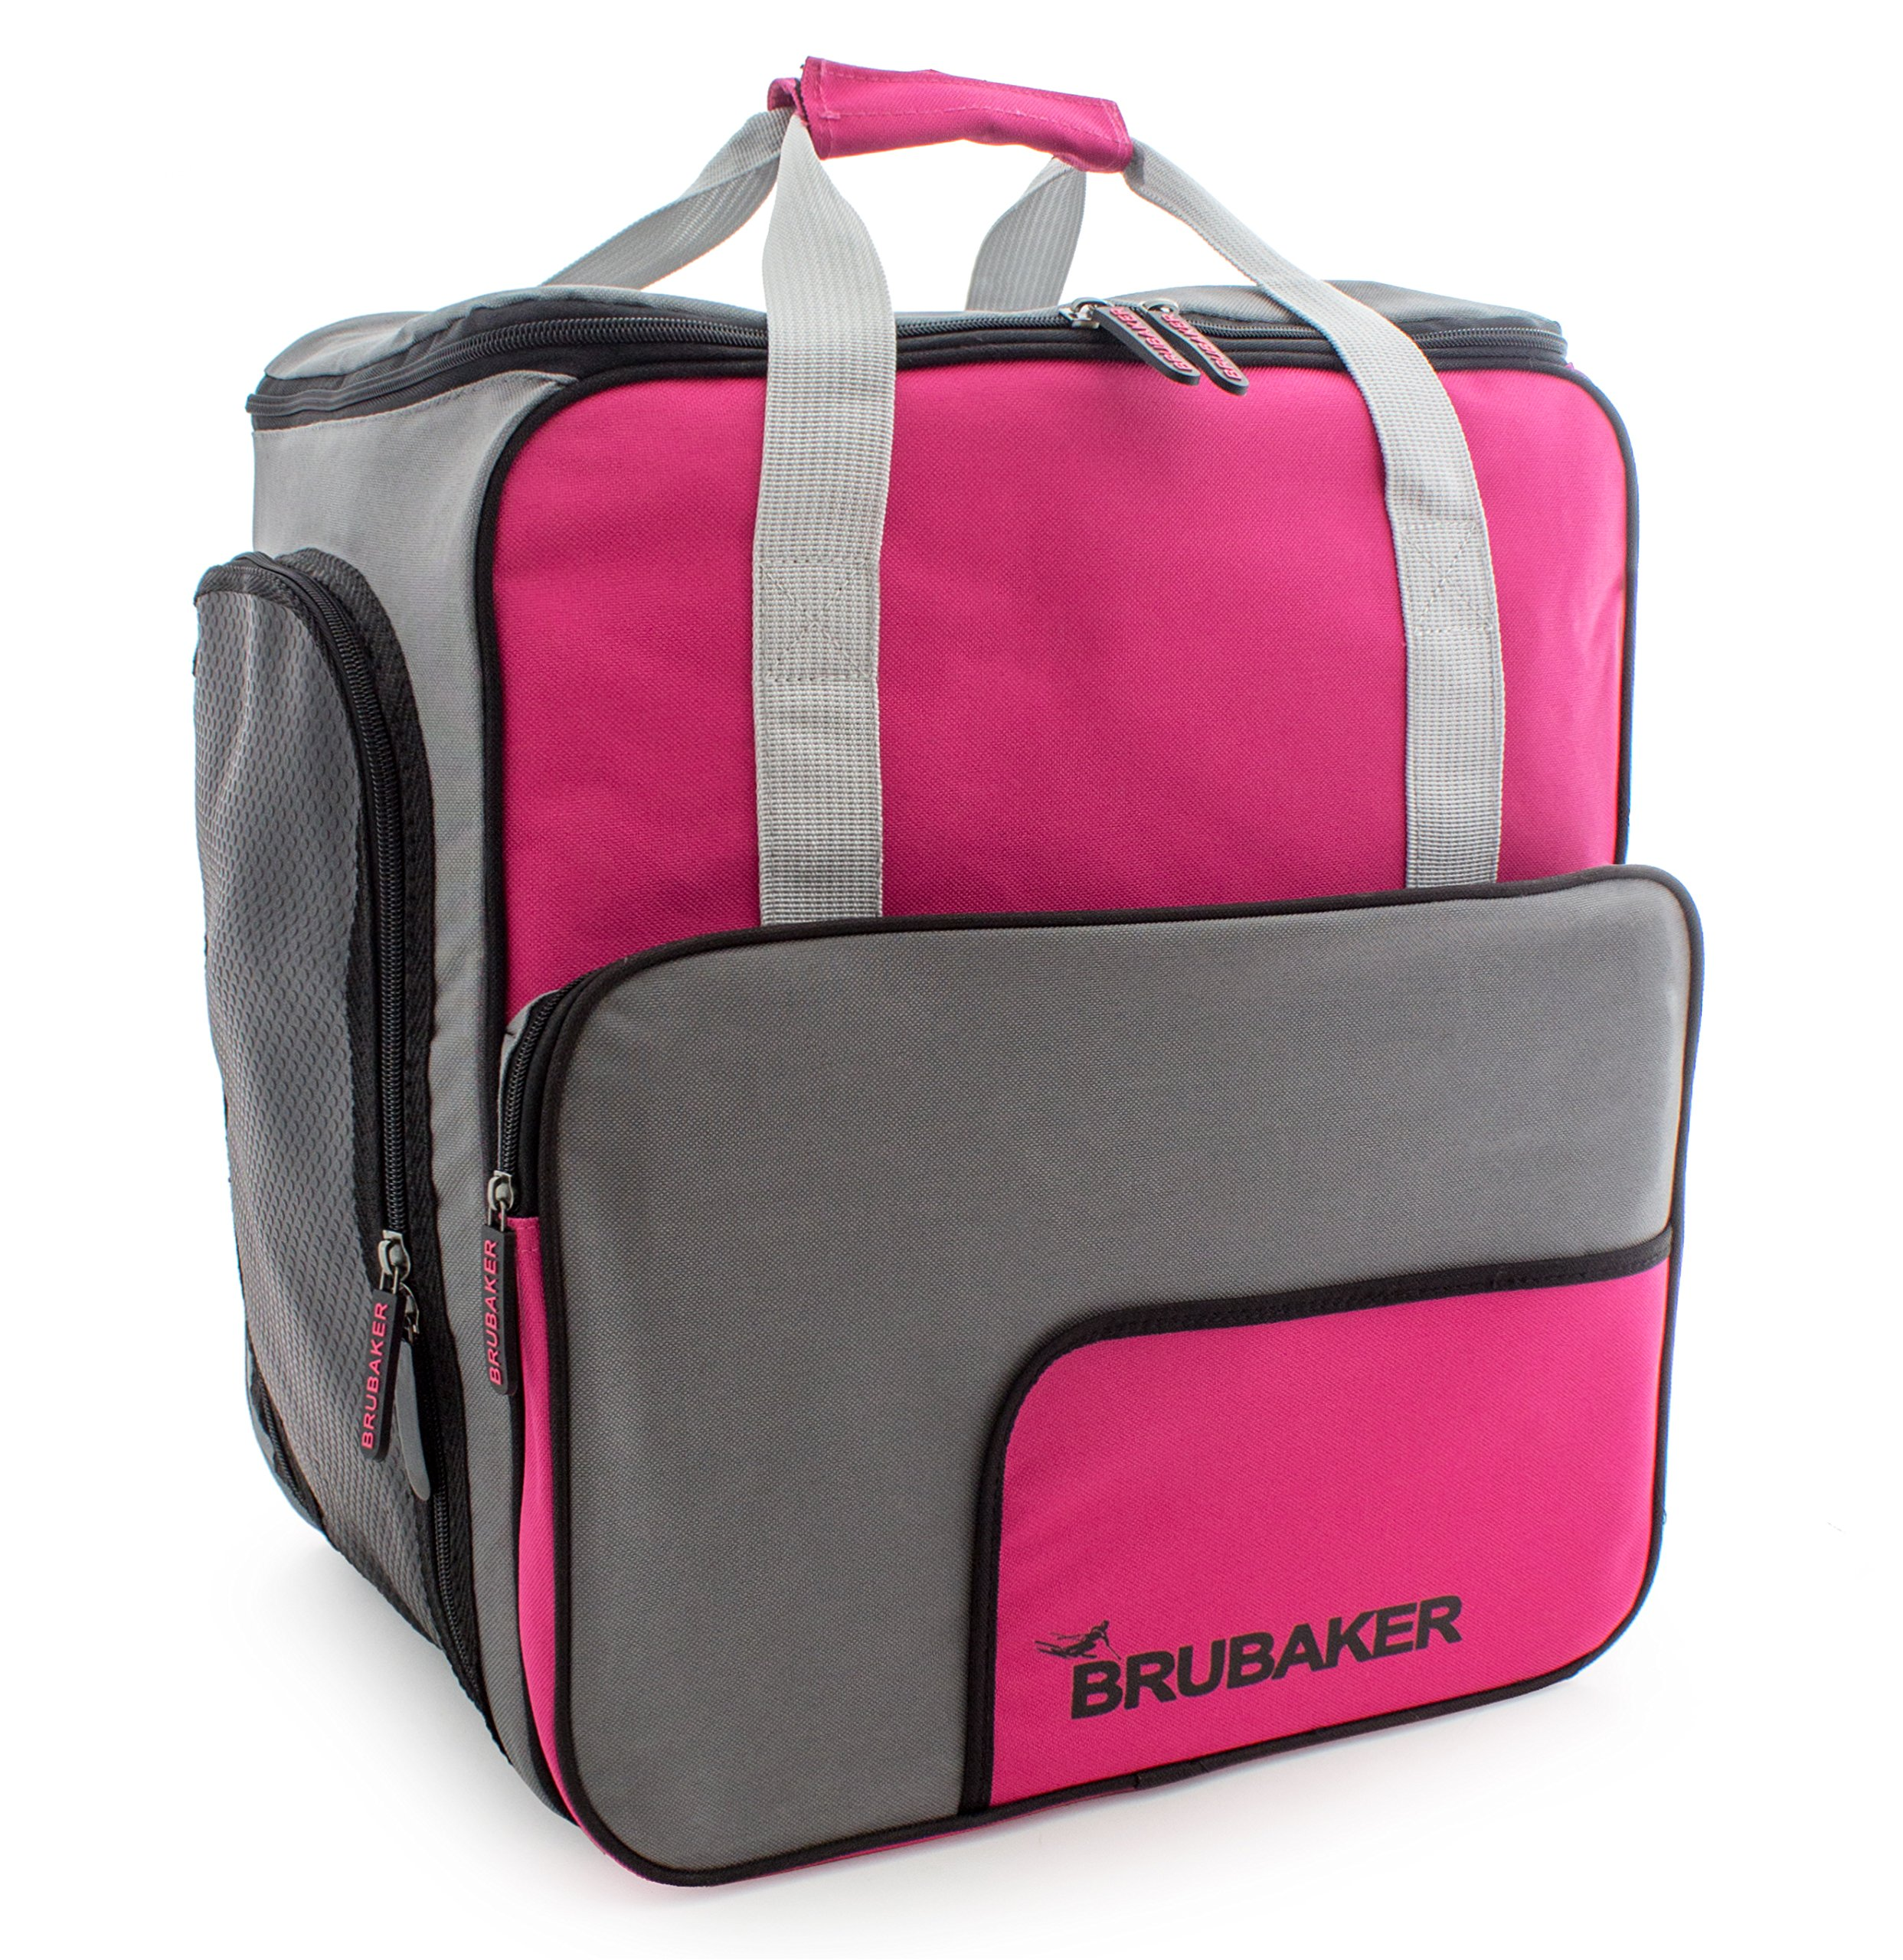 BRUBAKER Practical Ski Boot Winter Sports Bag Backpack Super Function - Limited Edition - Dark Pink Grey